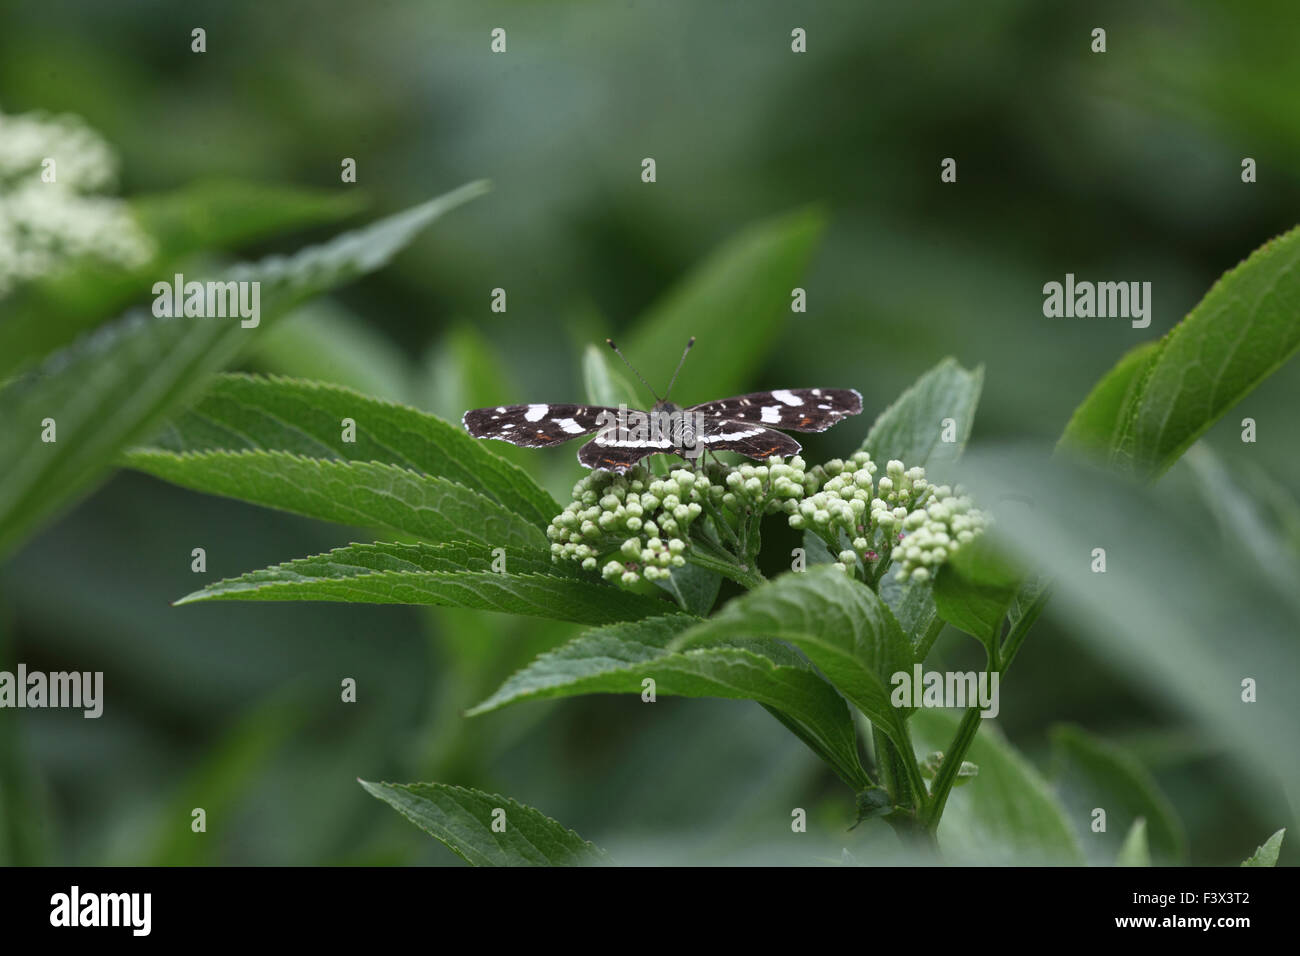 Map butterflySecond brood taking nectar from elder flowers Hungary June 2015 - Stock Image